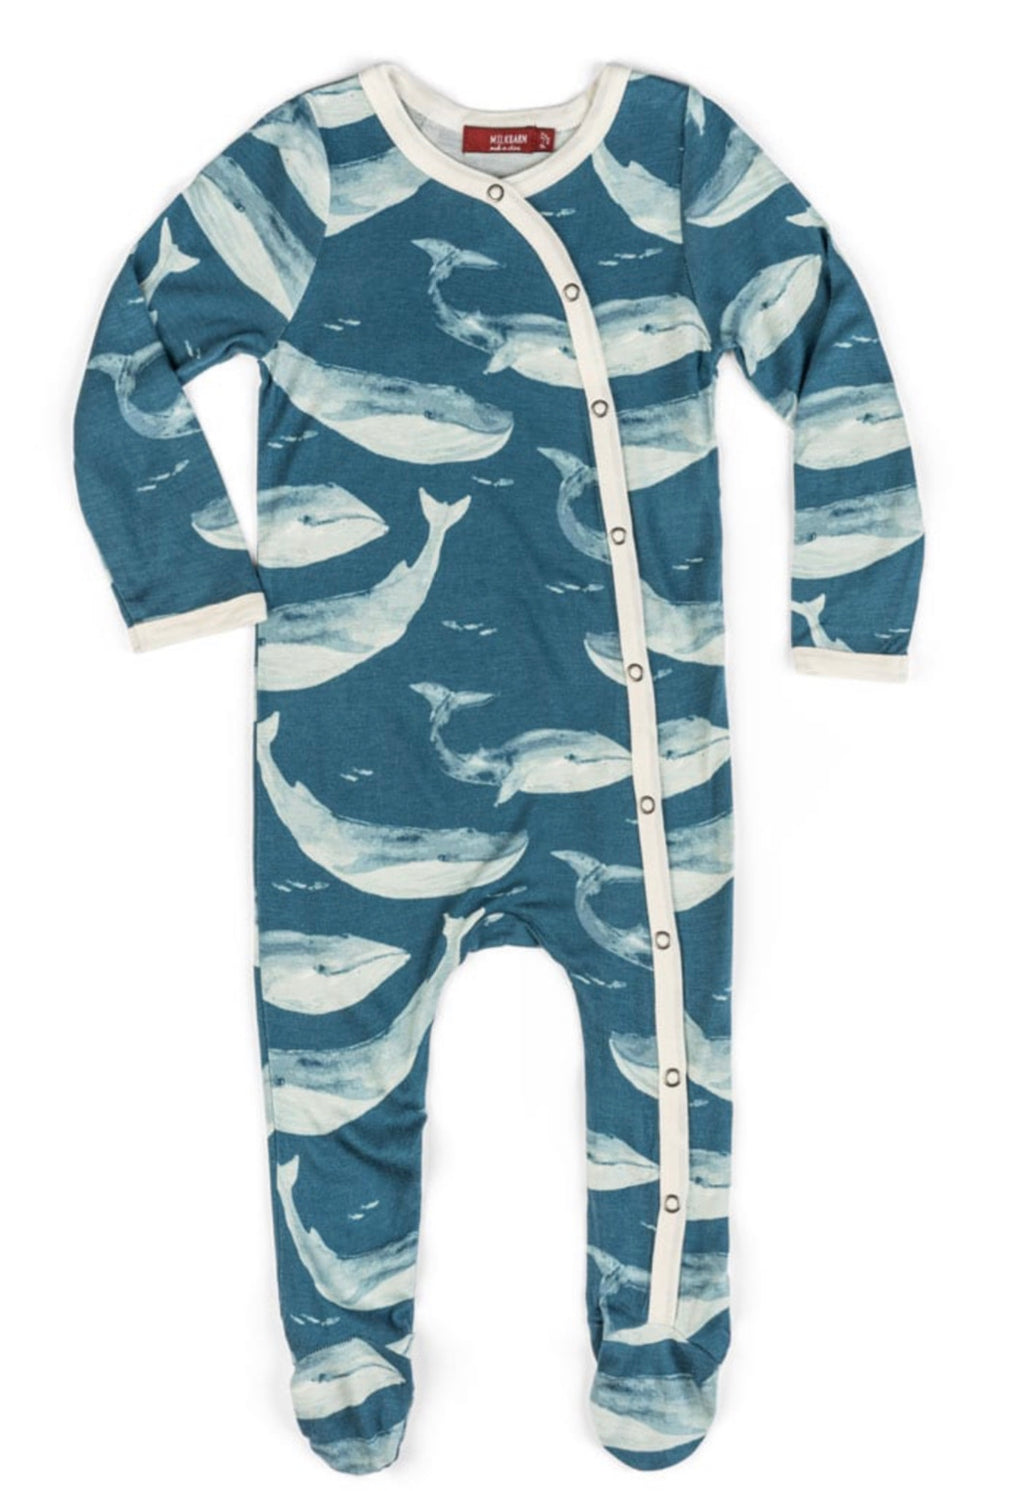 Bamboo footed baby romper in a blue whale print